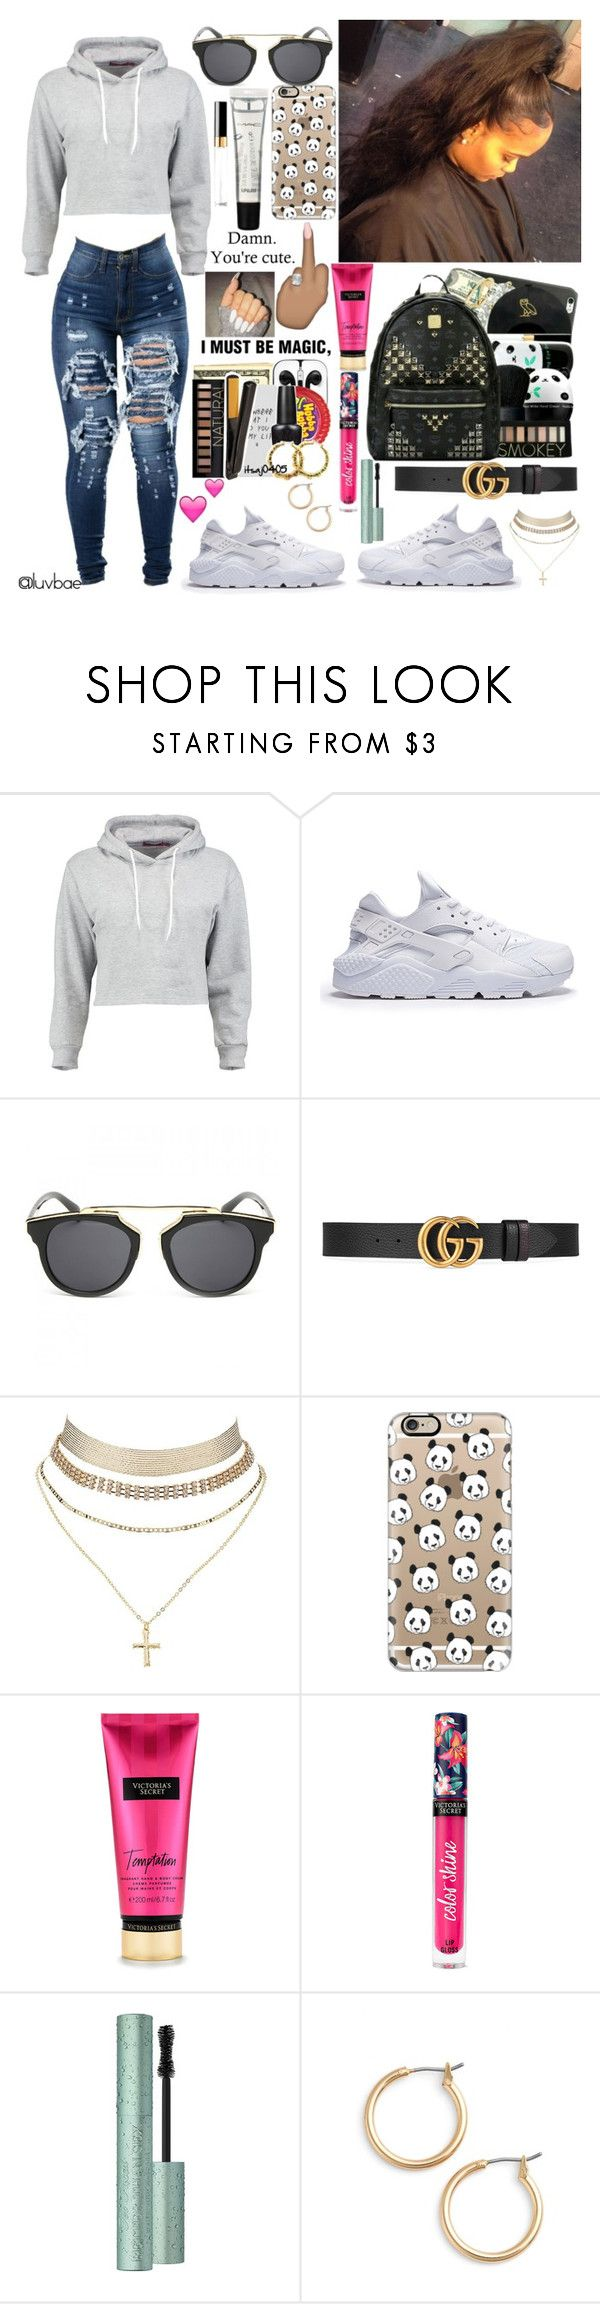 """""""Untitled #189"""" by luvbae ❤ liked on Polyvore featuring Boohoo, Gucci, Charlotte Russe, Casetify, Victoria's Secret, M.A.C, Nordstrom and Chanel"""